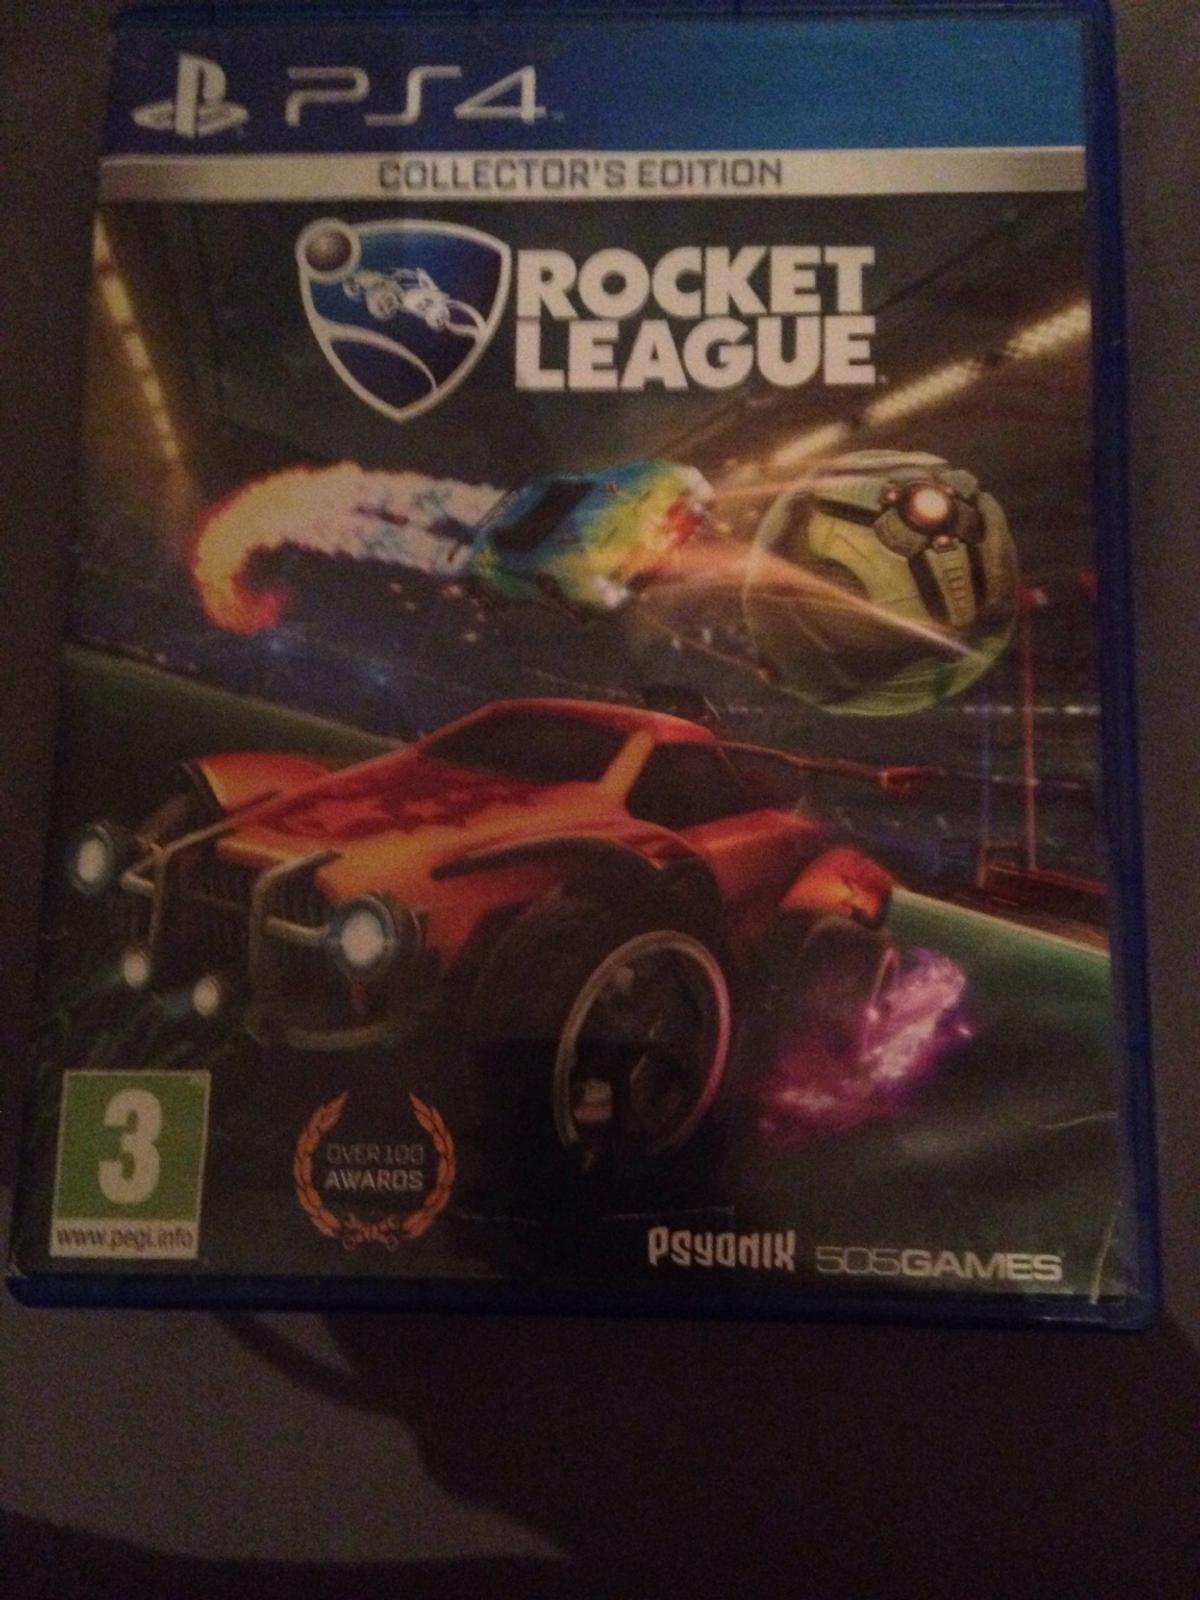 Ps4 Rocket League In Hx2 Calderdale For 12 00 For Sale Shpock